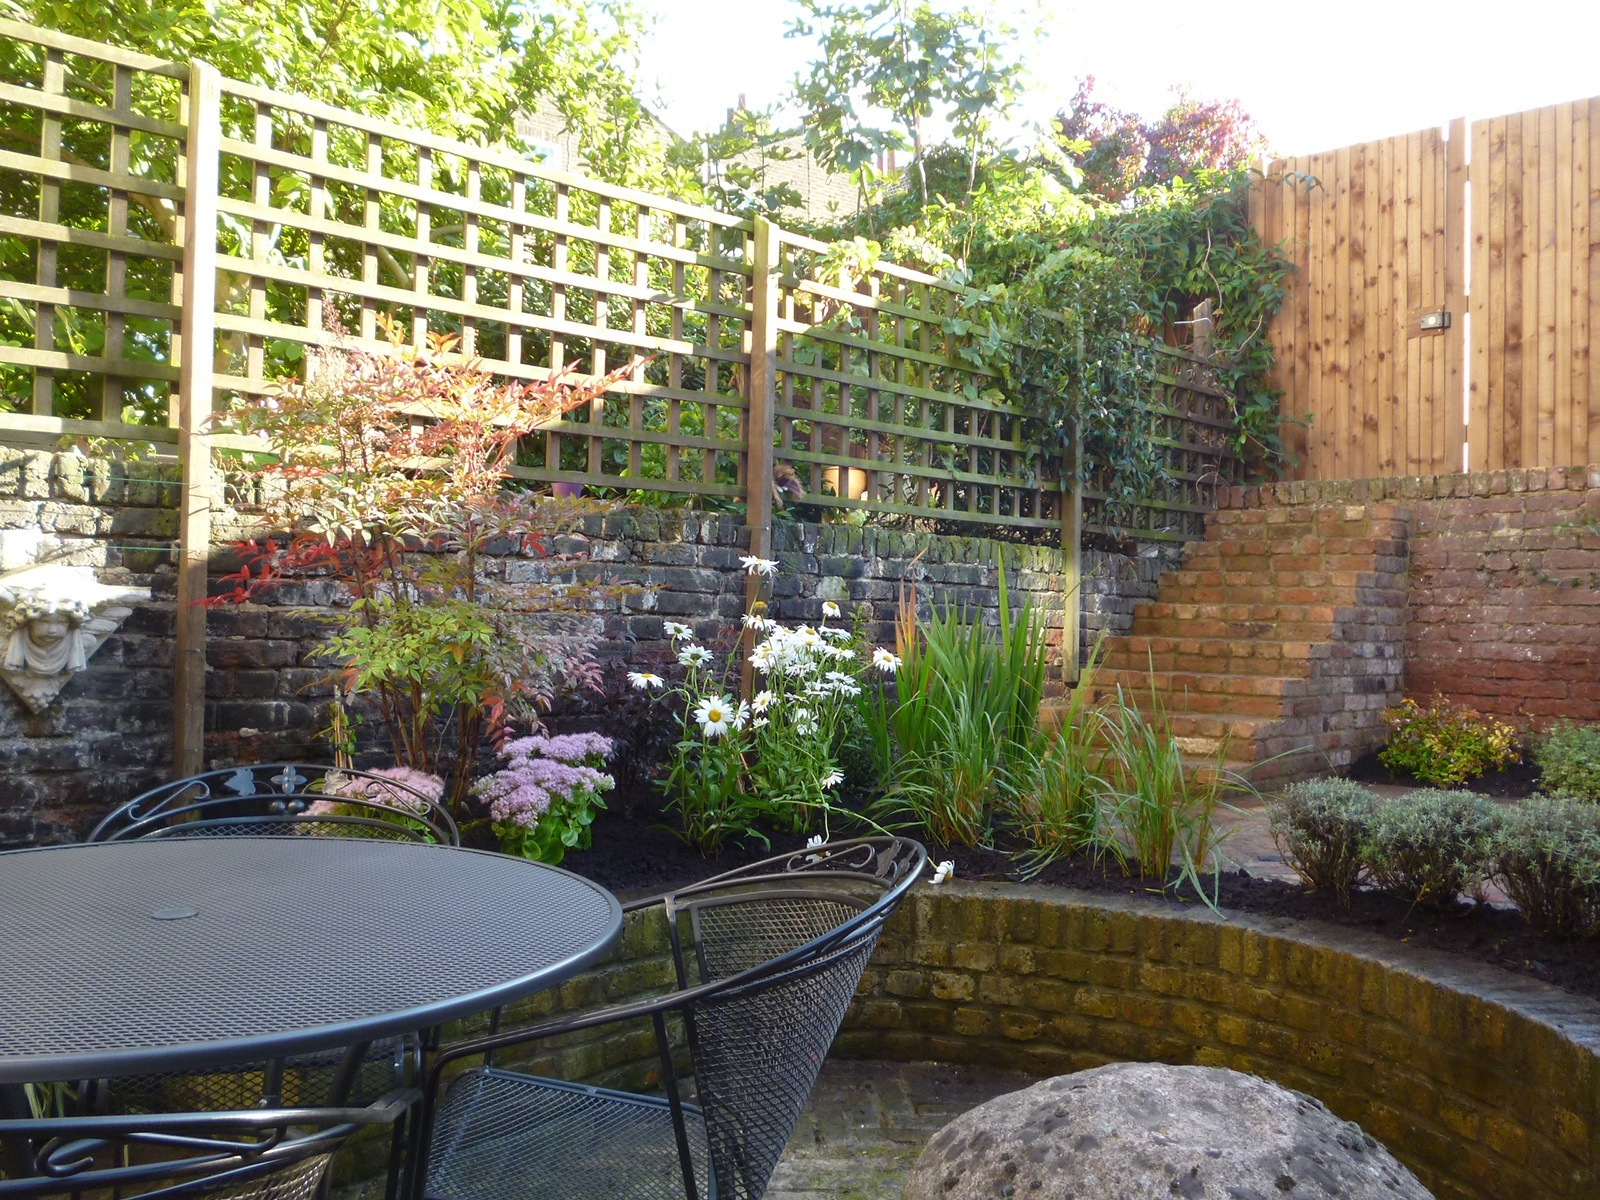 Another newly-finished small garden that will quickly turn into a have for humans and wildlife.